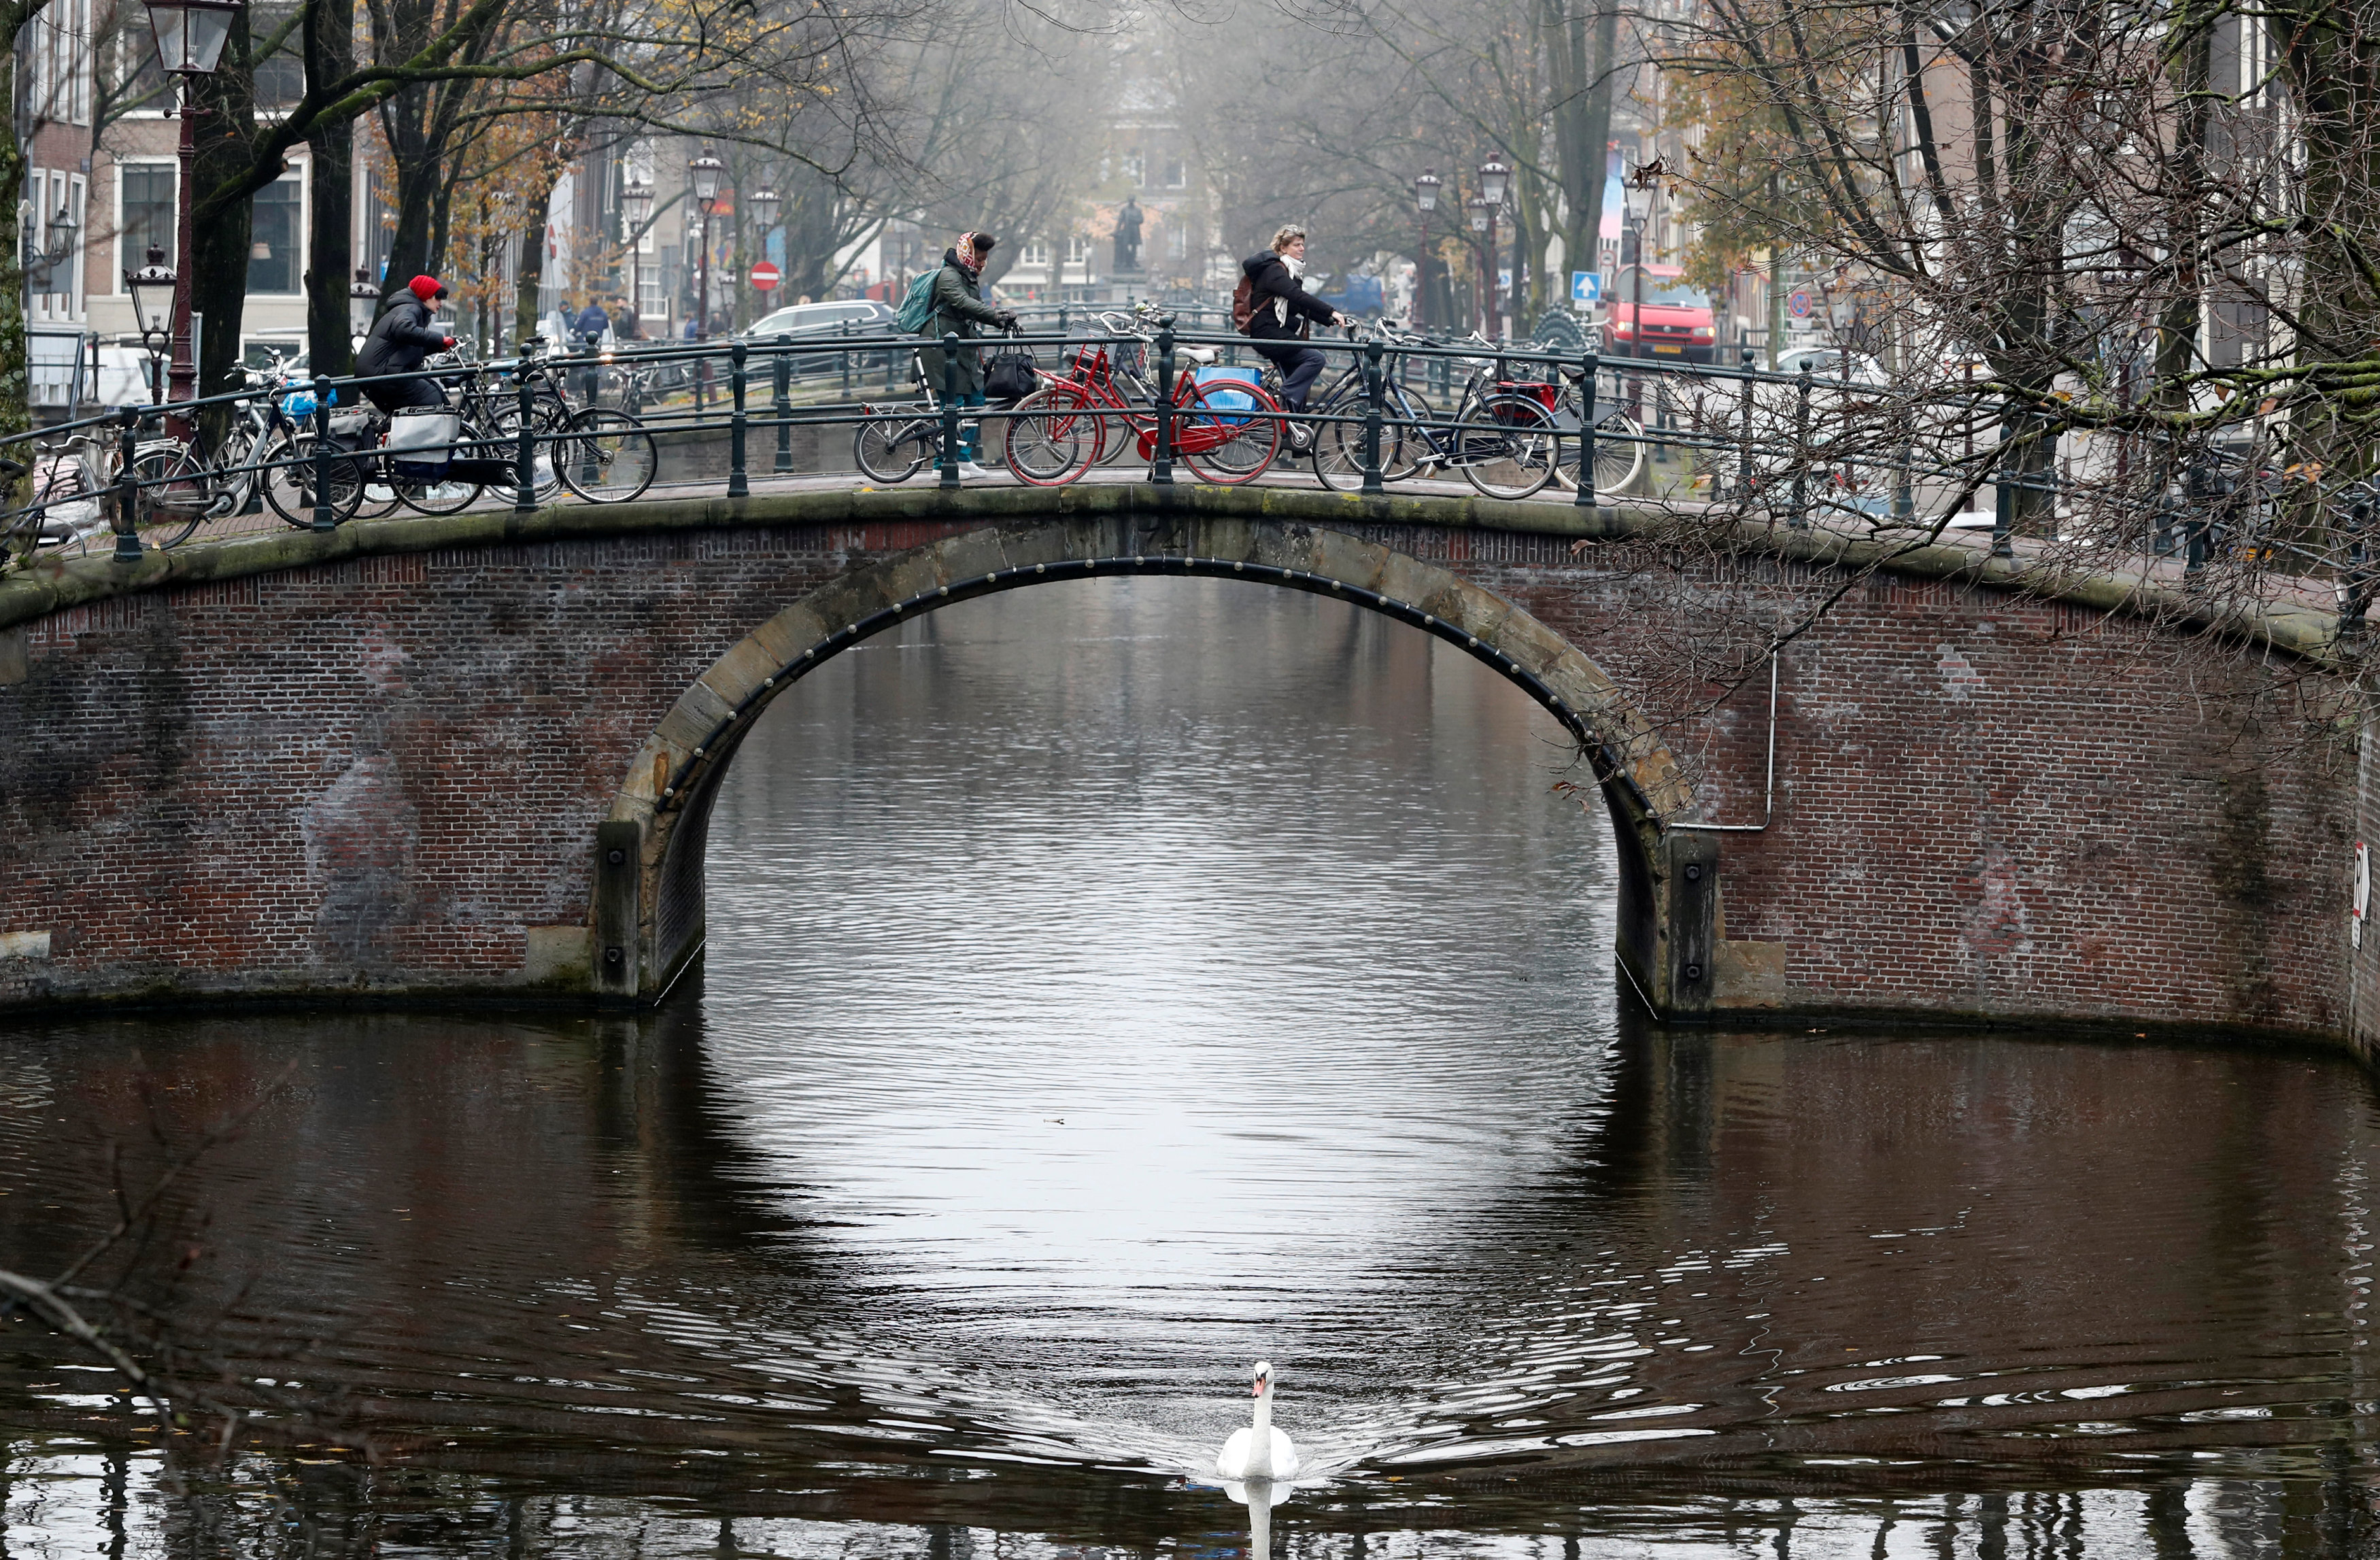 A cyclist ride on a bridge in central Amsterdam